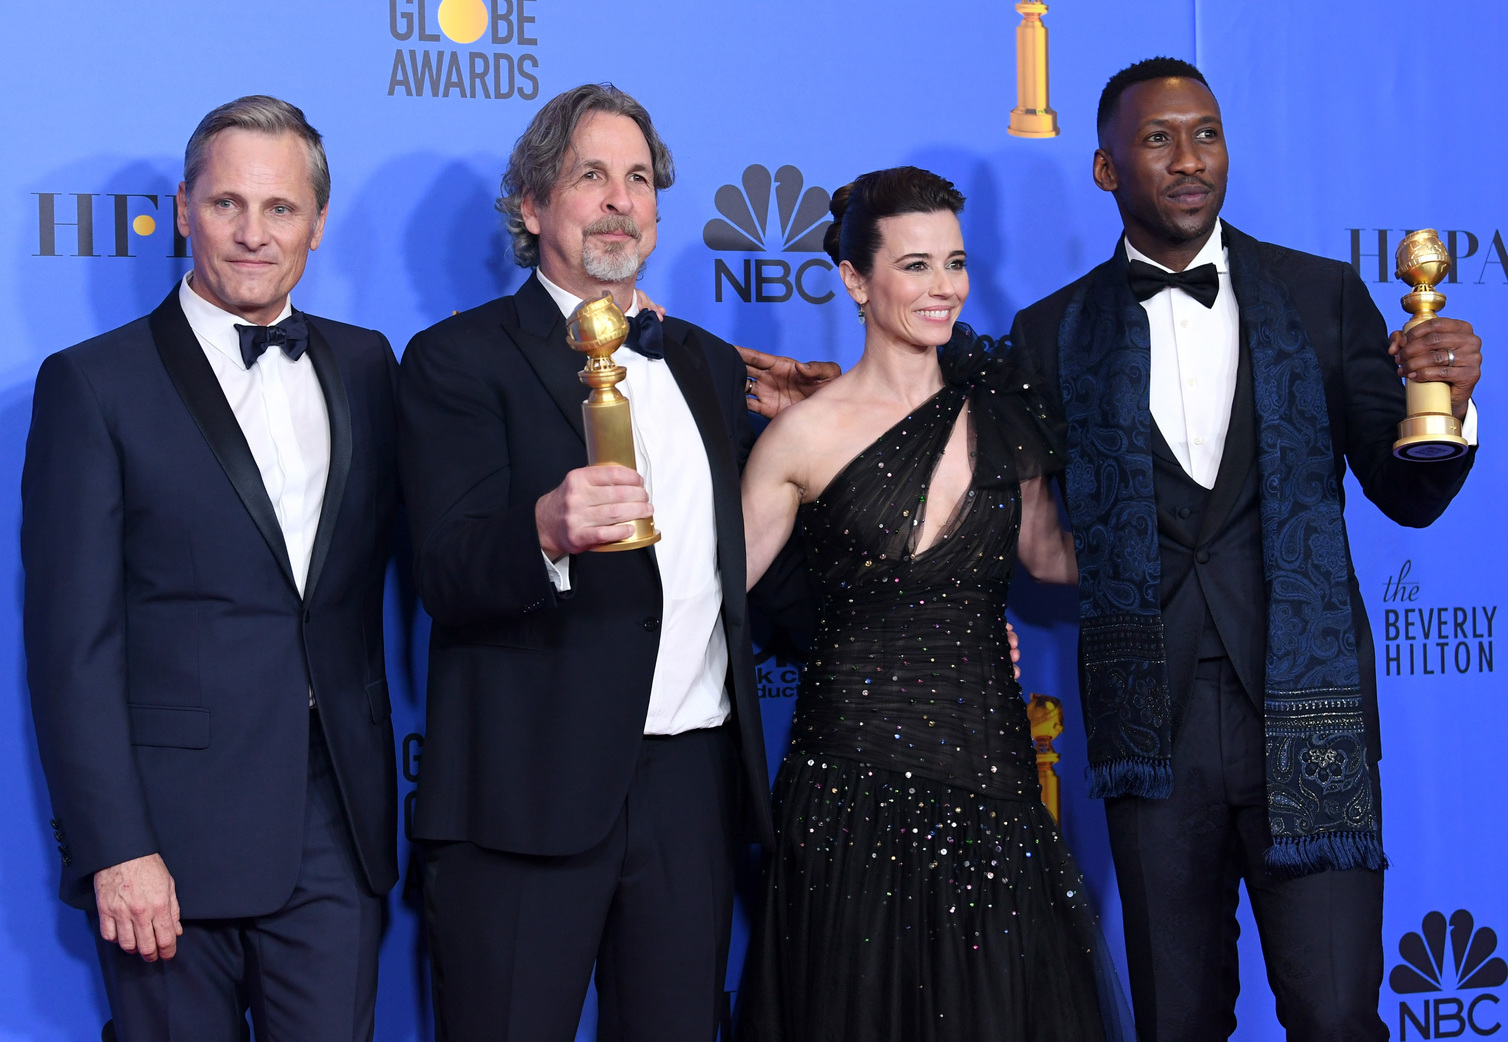 Viggo Mortensen, Peter Farrelly, Linda Cardellini, és Mahershala Ali a Golden Globe-díjátadón (Fotó: Getty Images/Kevin Winter)